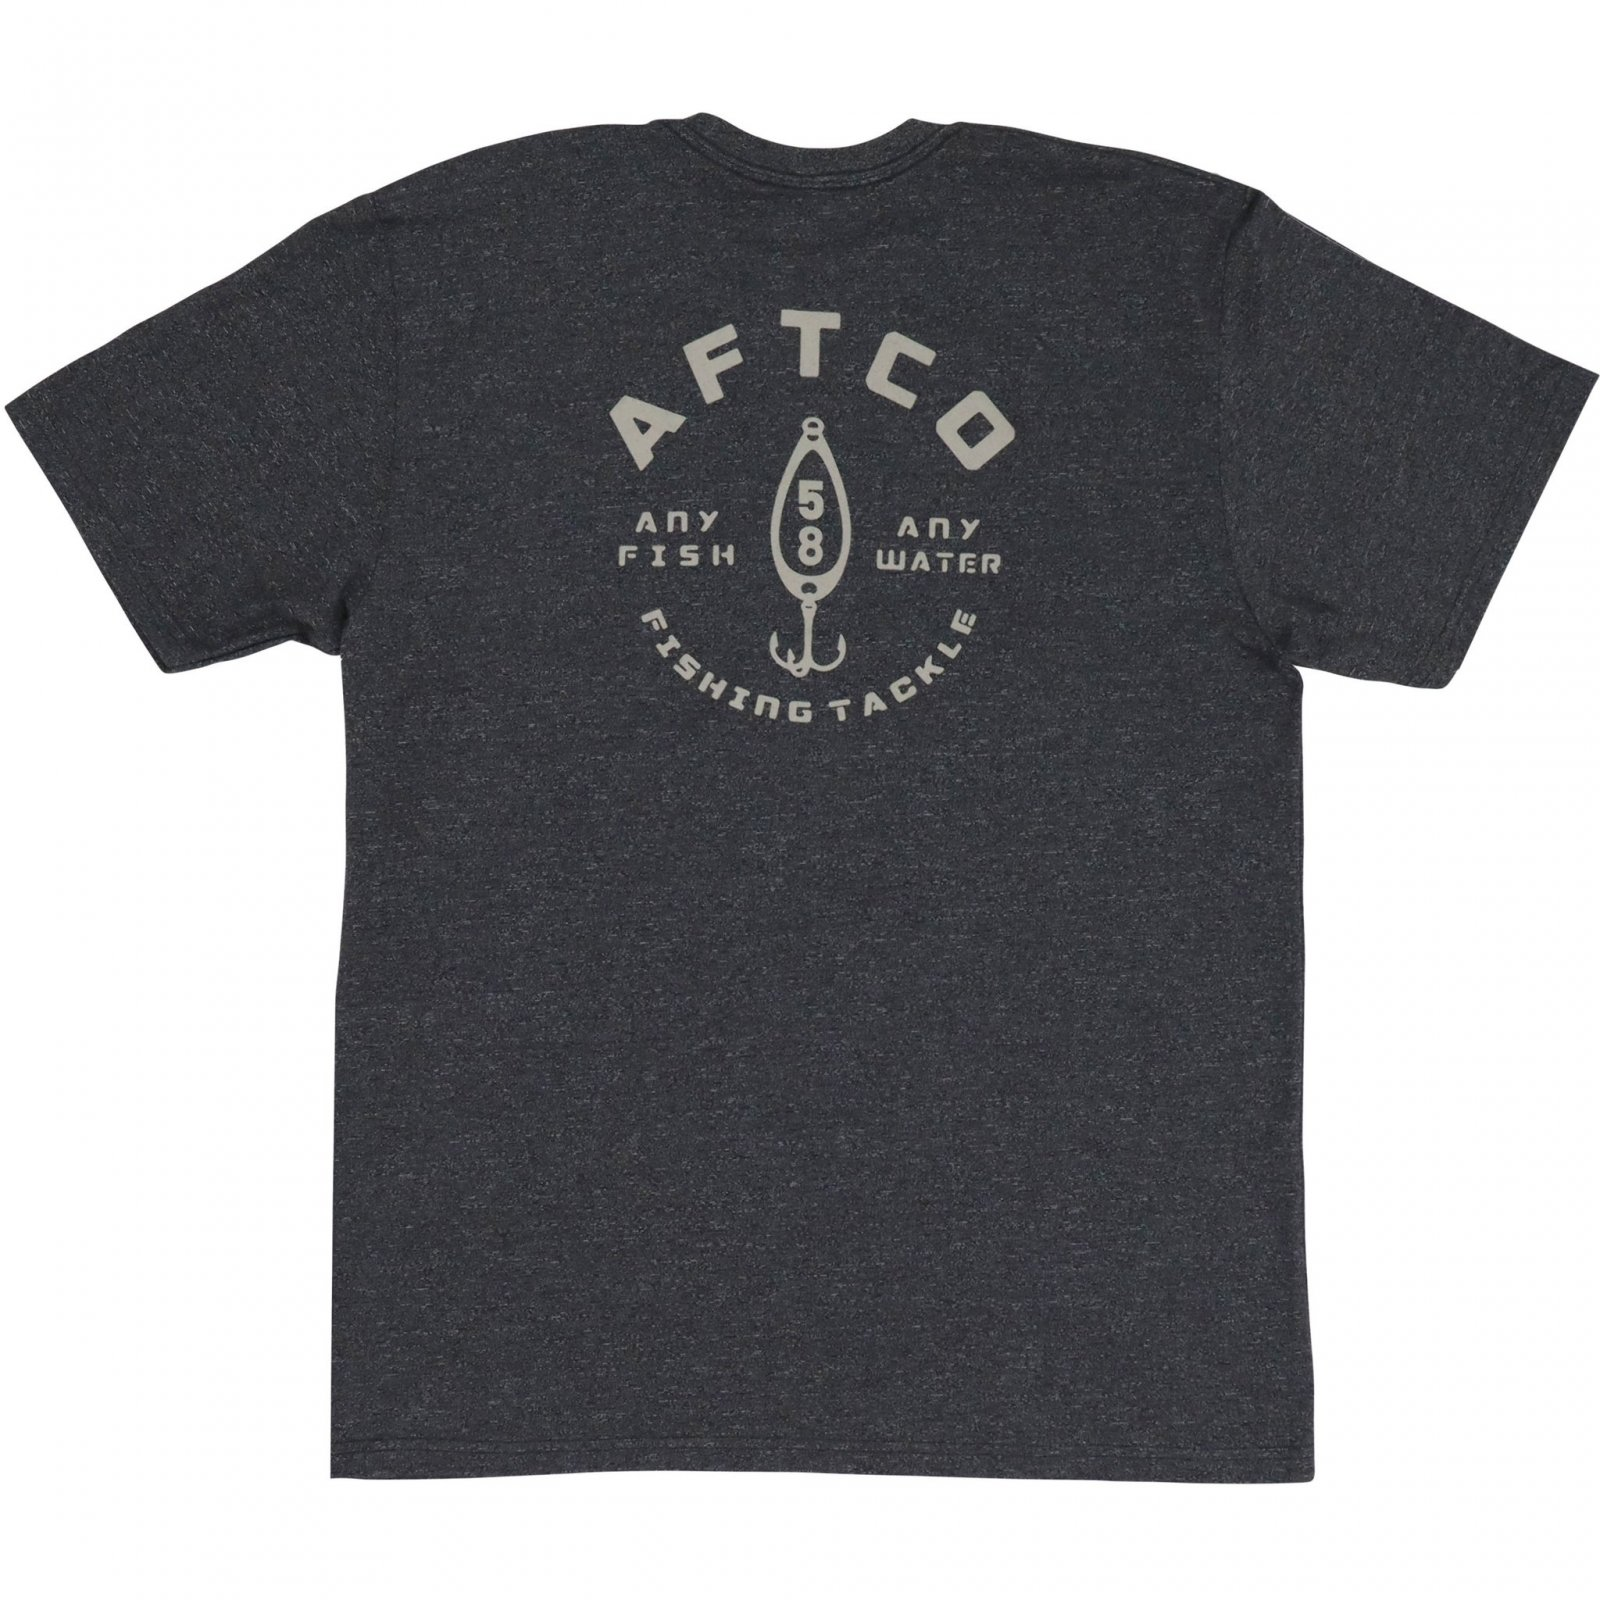 Aftco West Side Tee